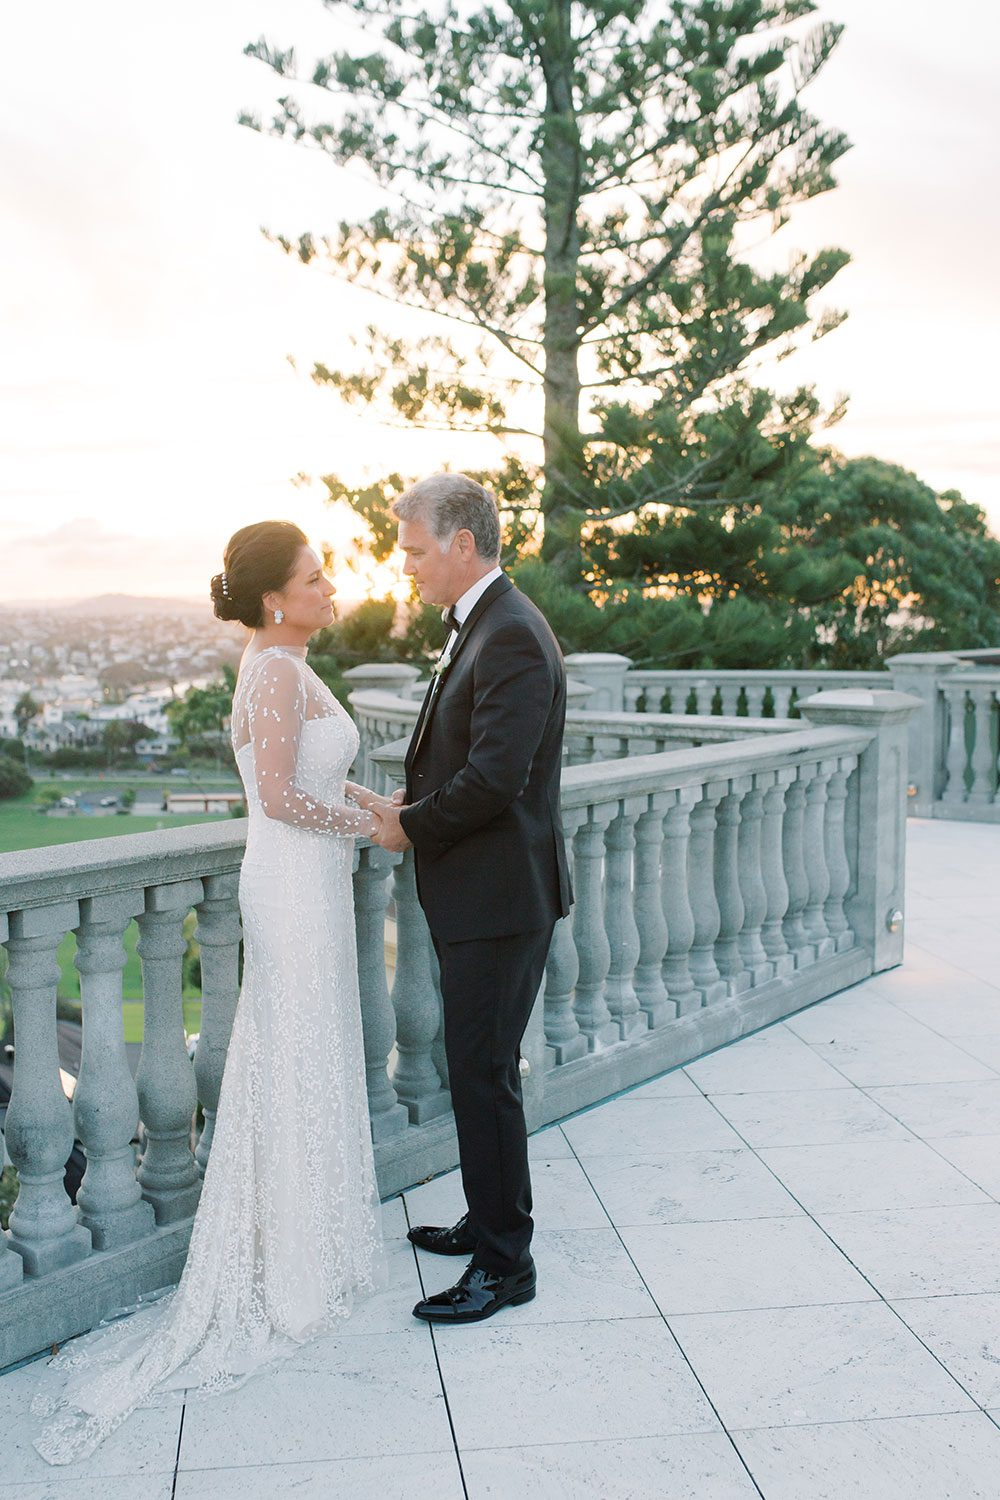 Bride wearing bespoke gown by Auckland wedding dress designer Vinka Design, with a high neckline and delicate spotted embroidery - with groom on balcony